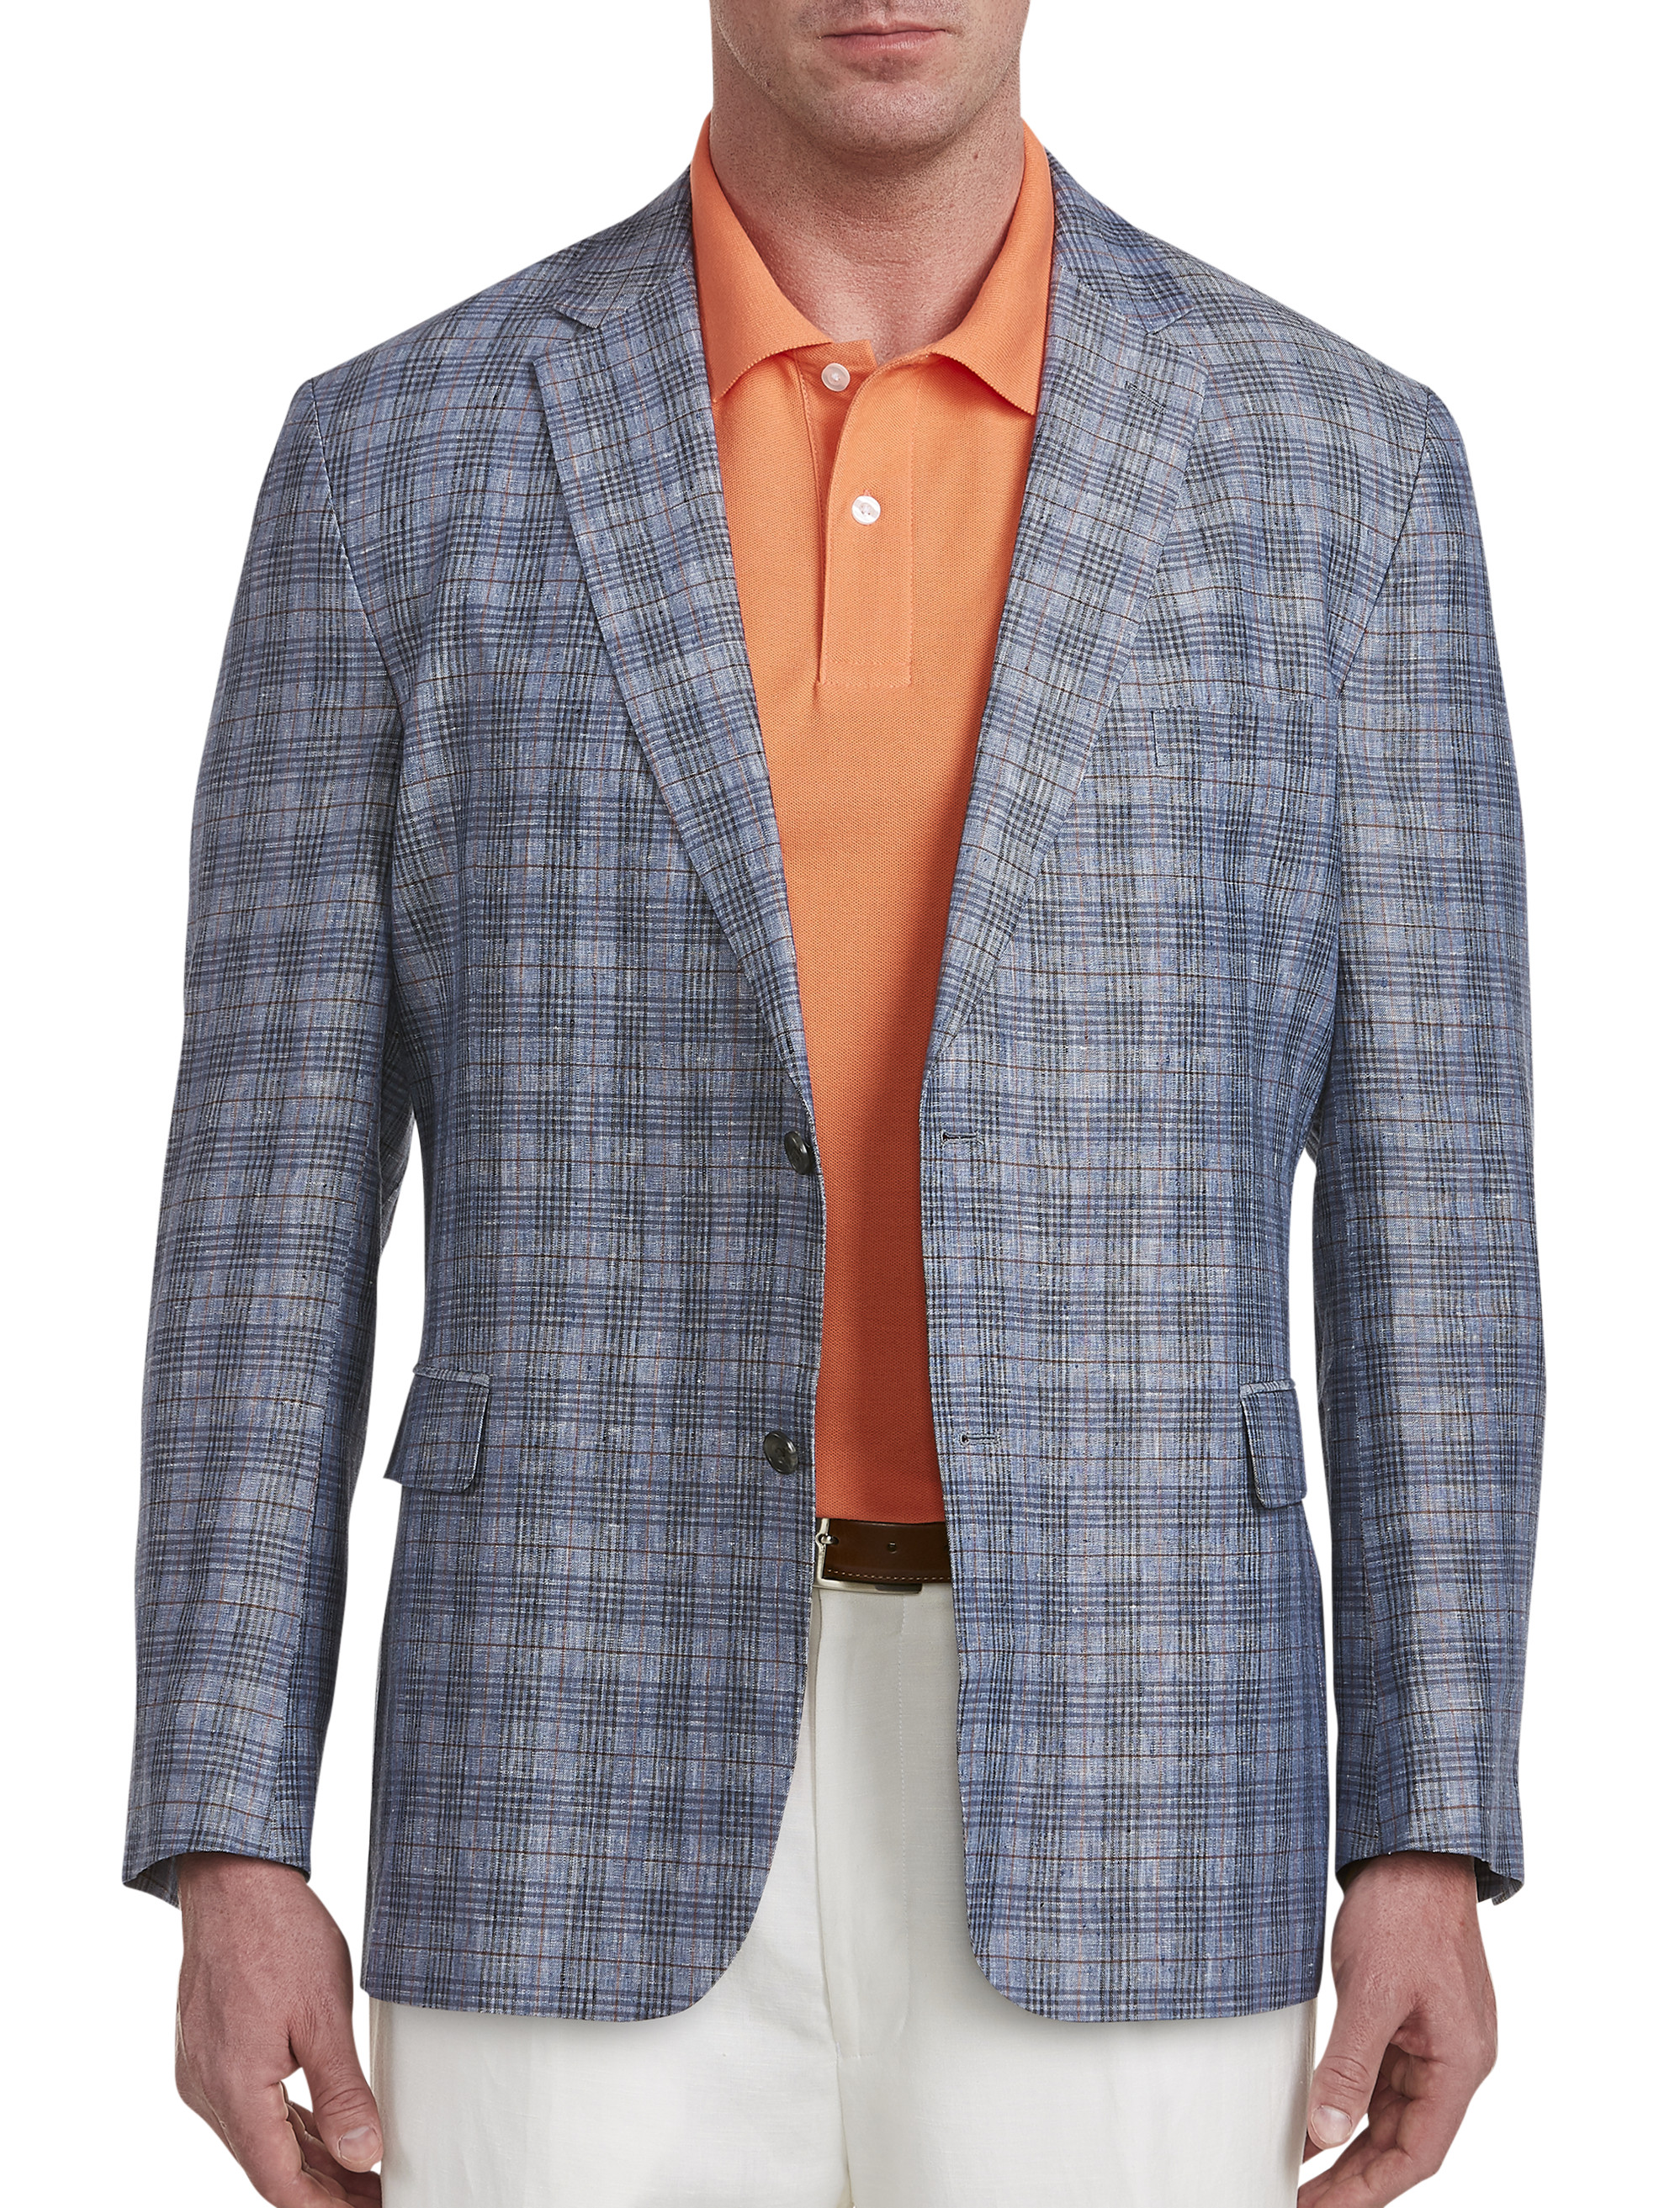 Jean-Paul Germain Deco Plaid Linen Sport Coat | Tuggl